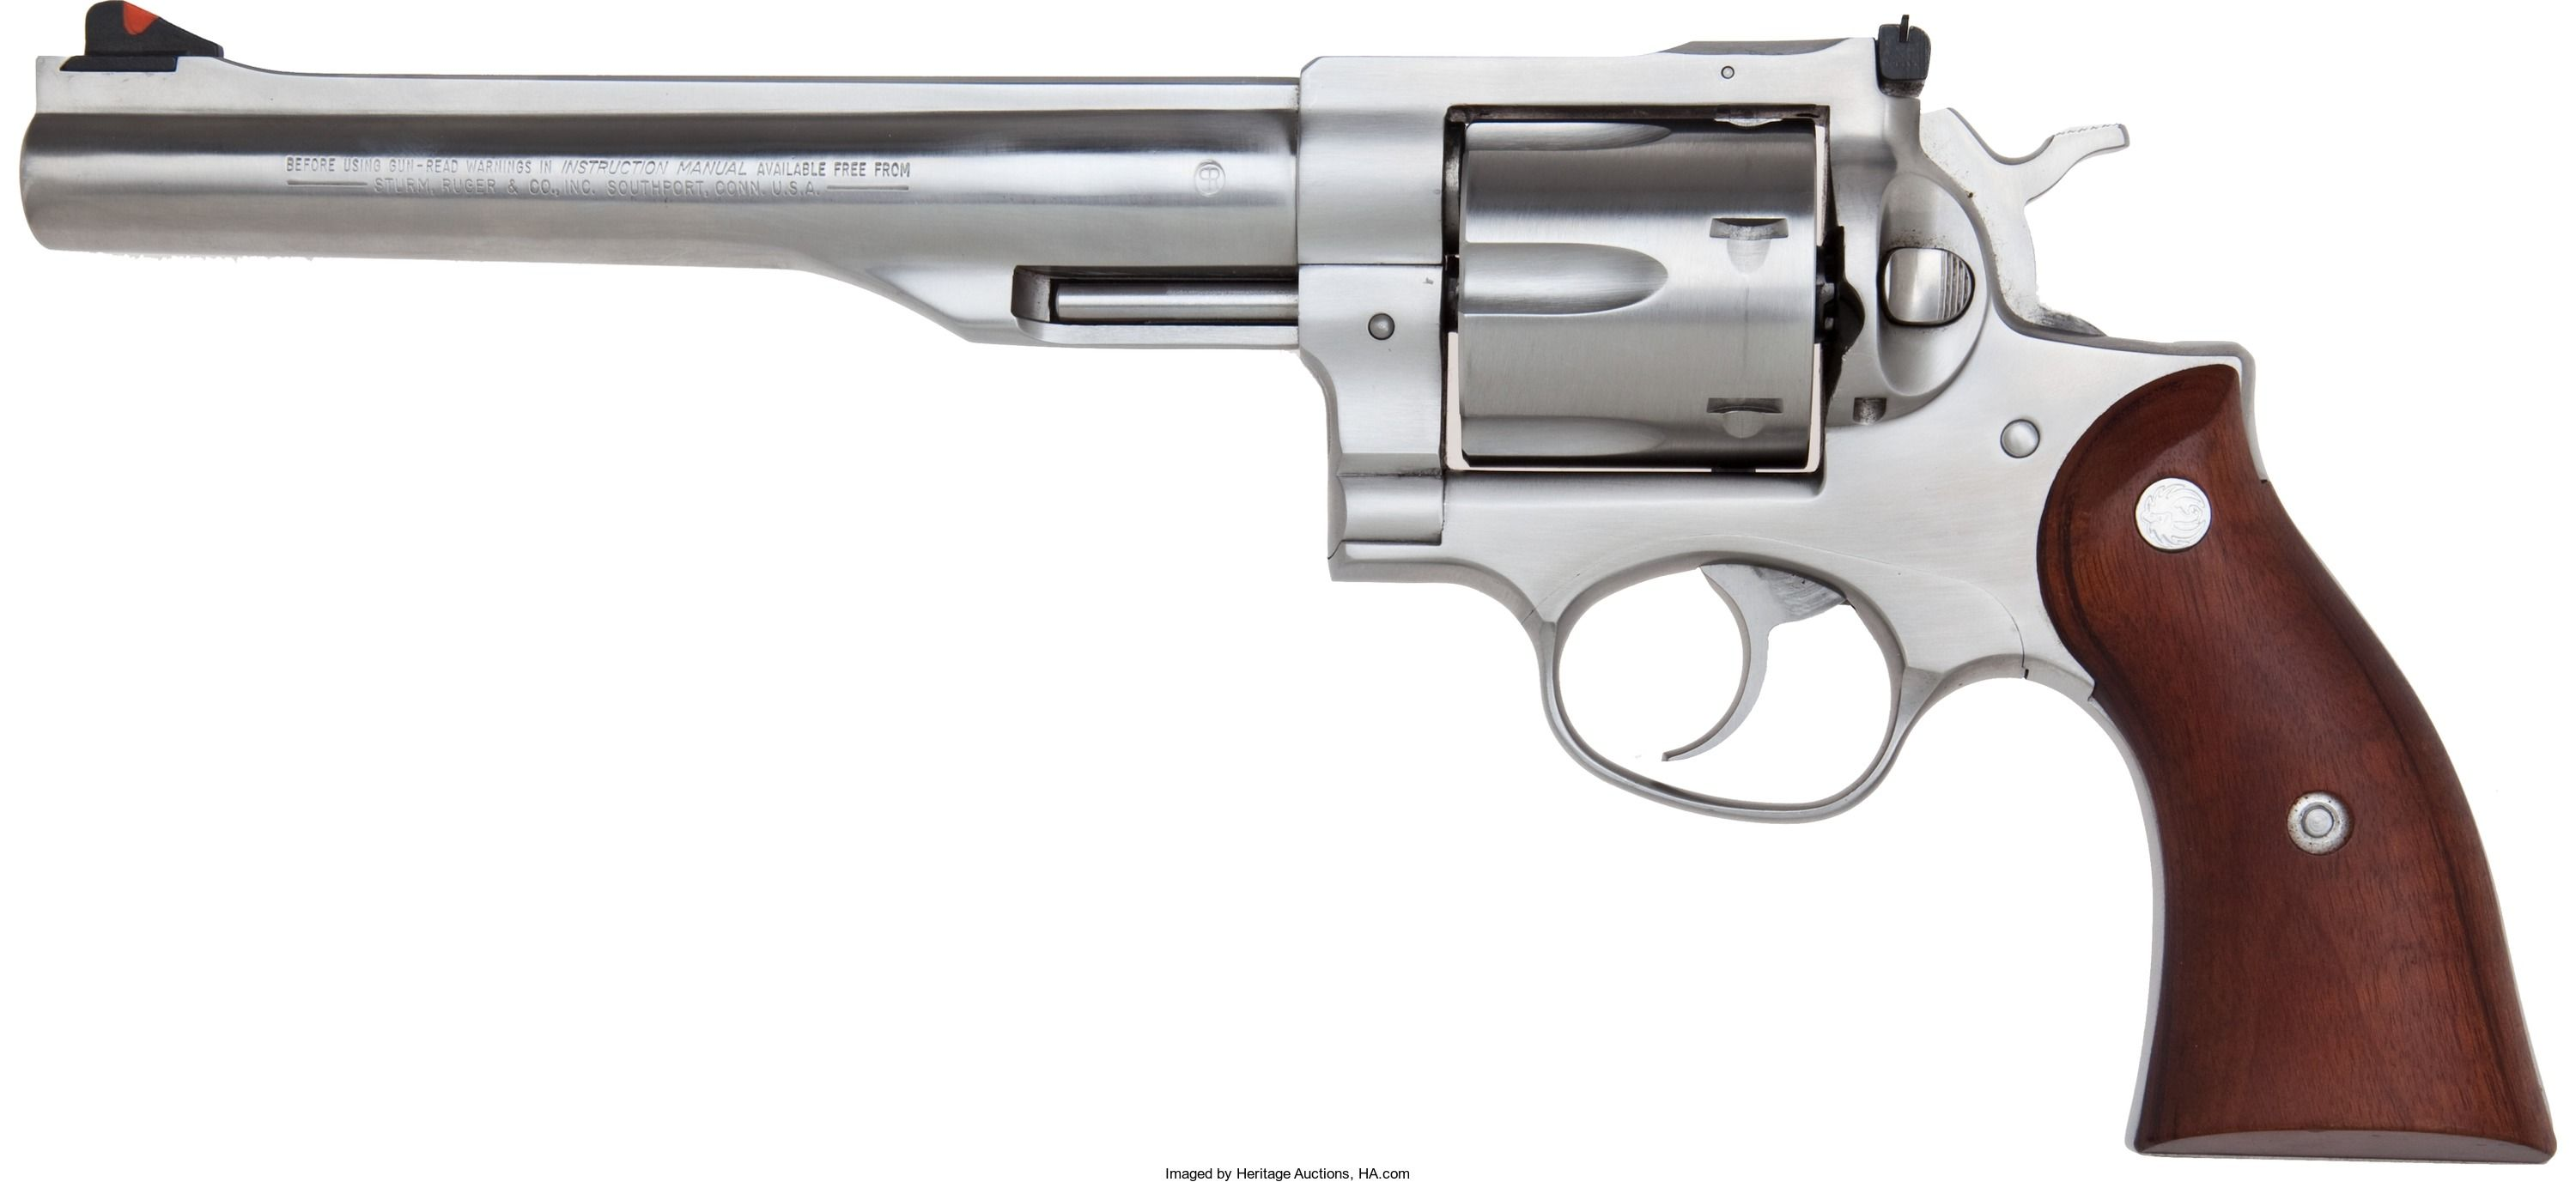 44 magnum Sturm Ruger Redhawk Double Action Revolver  Serial